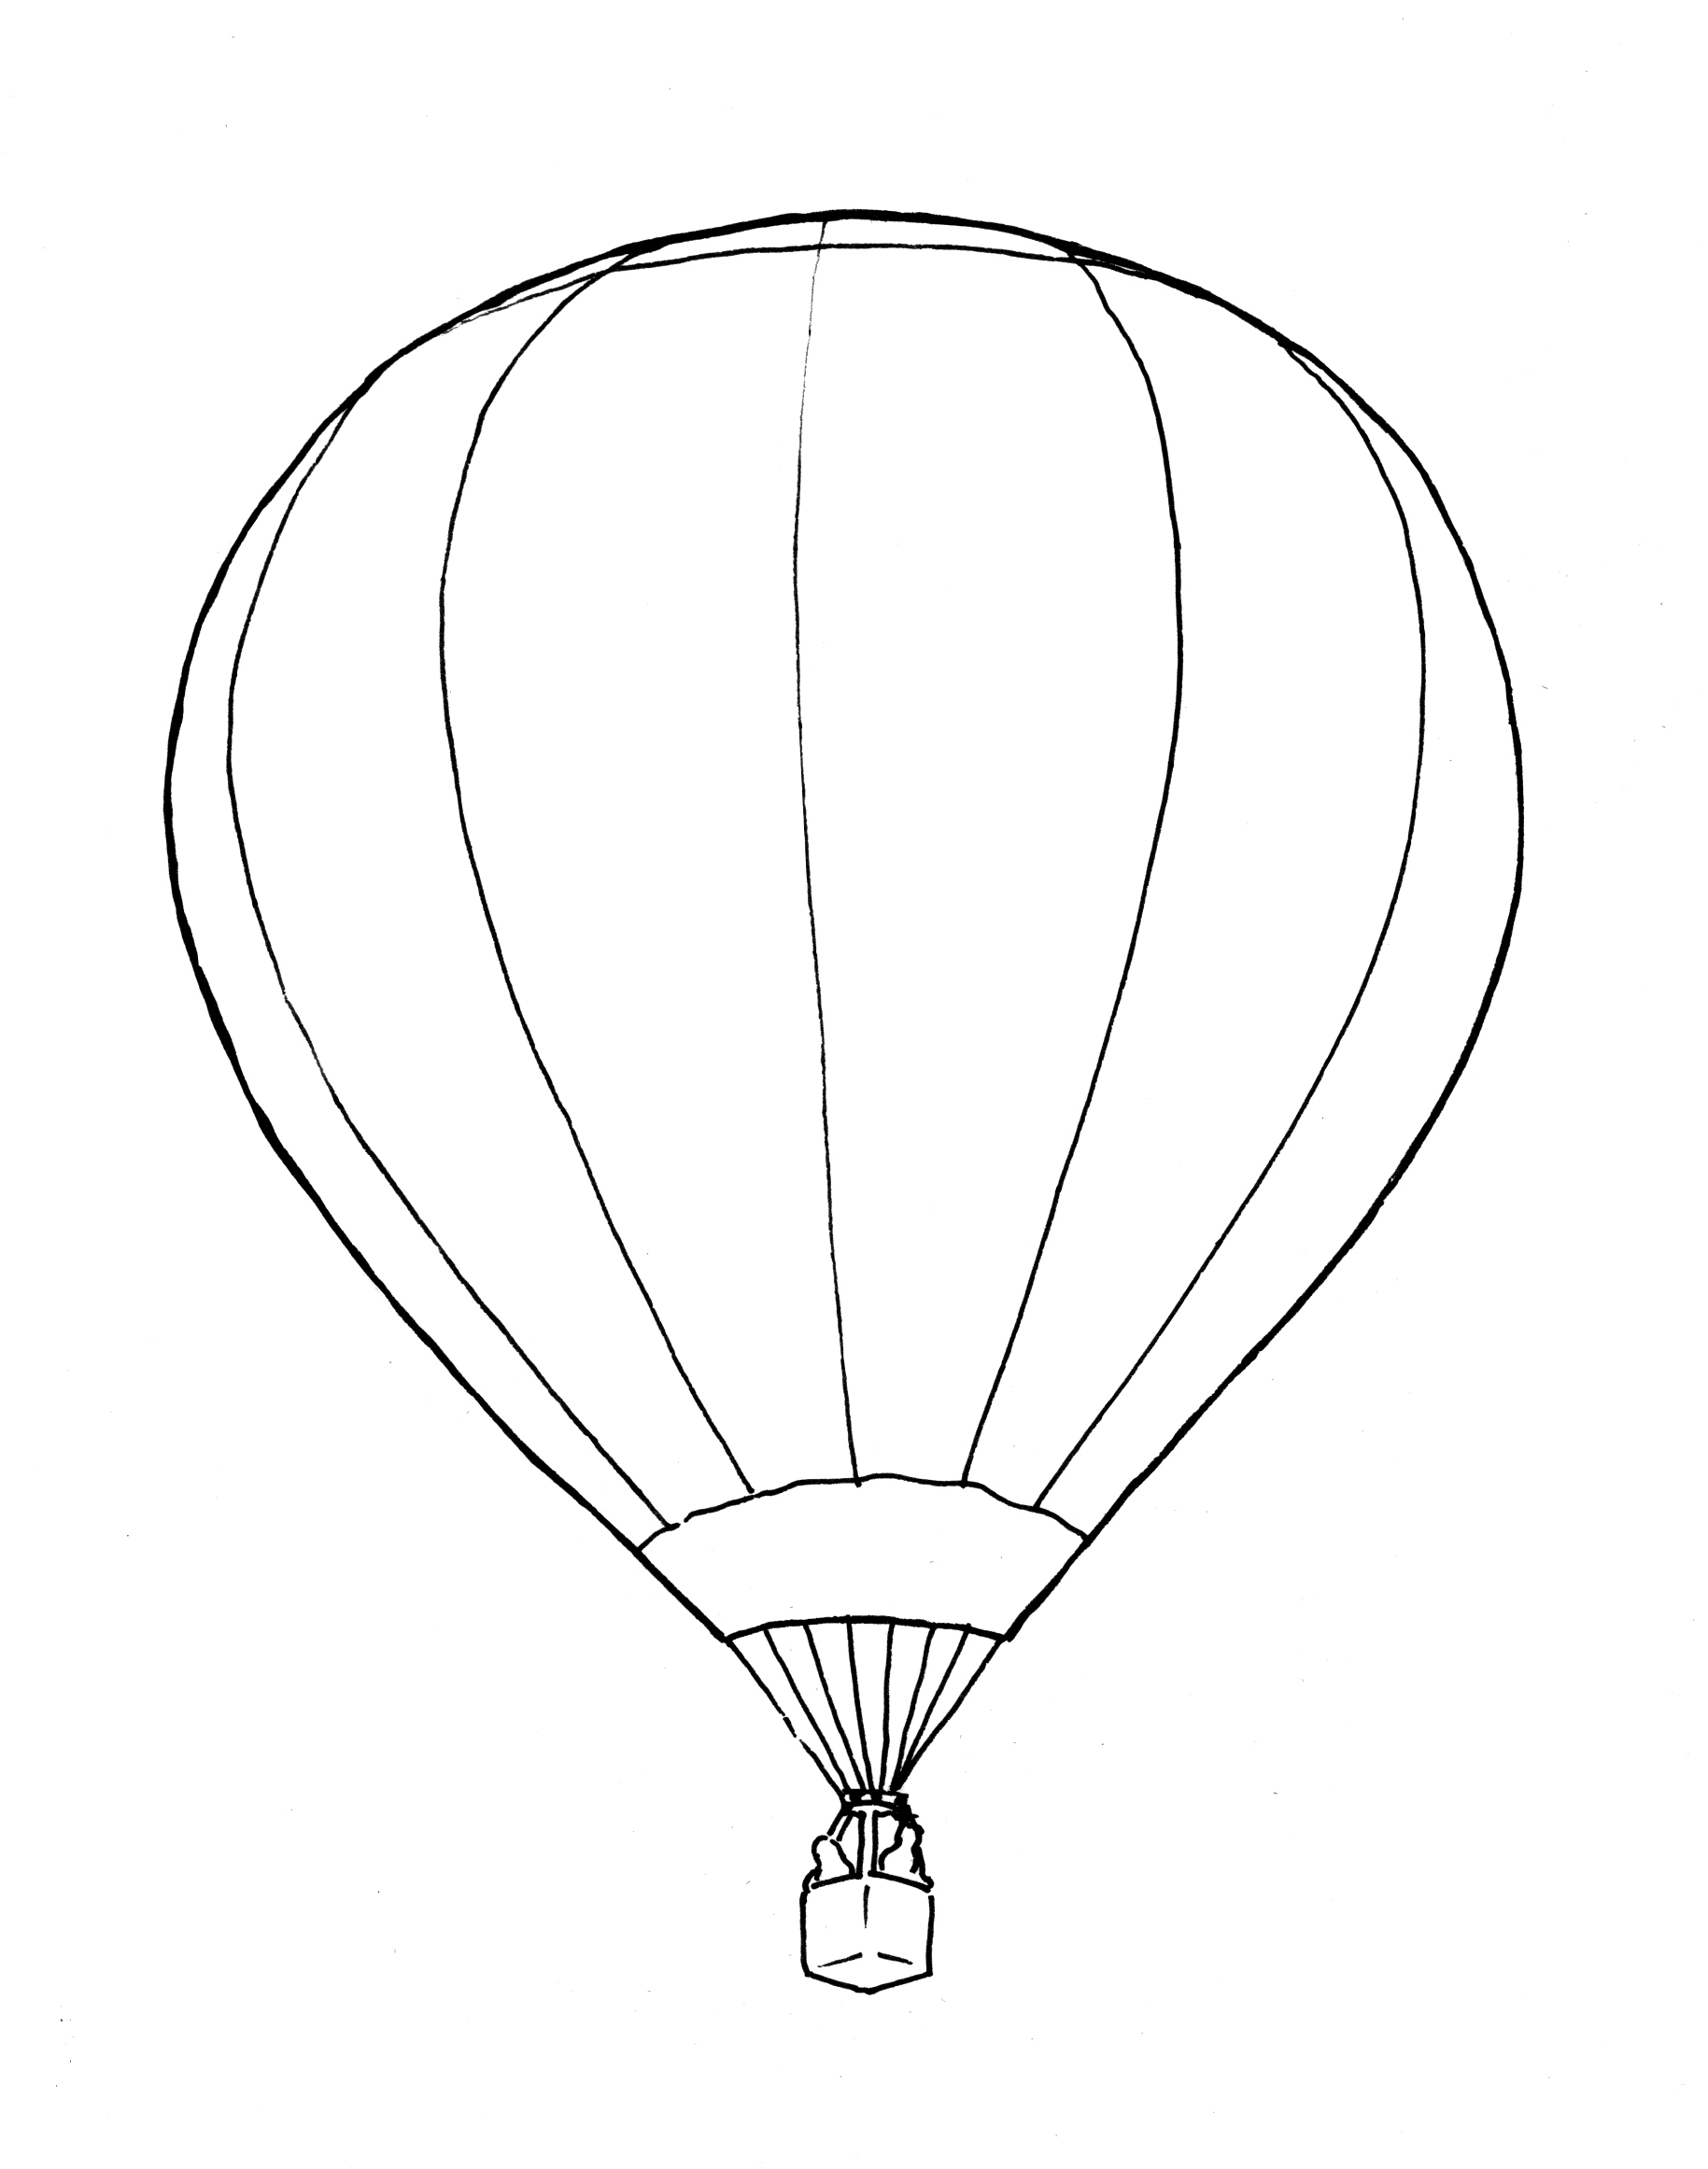 Drawn hot air balloon Hot Page Coloring With page